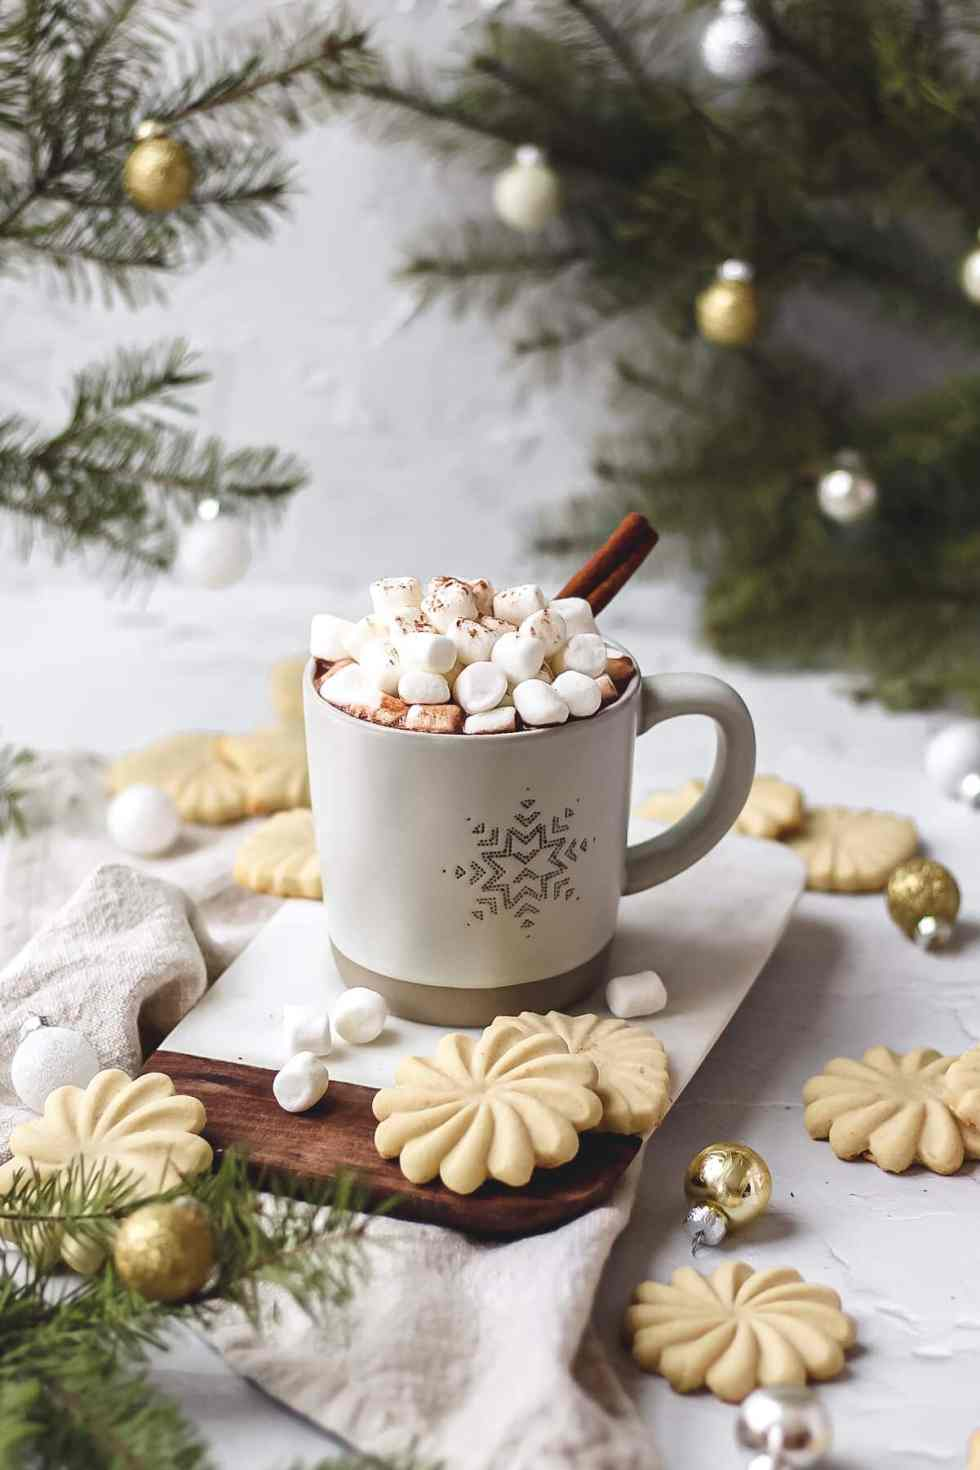 homemade cinnamon hot chocolate with marshmallows